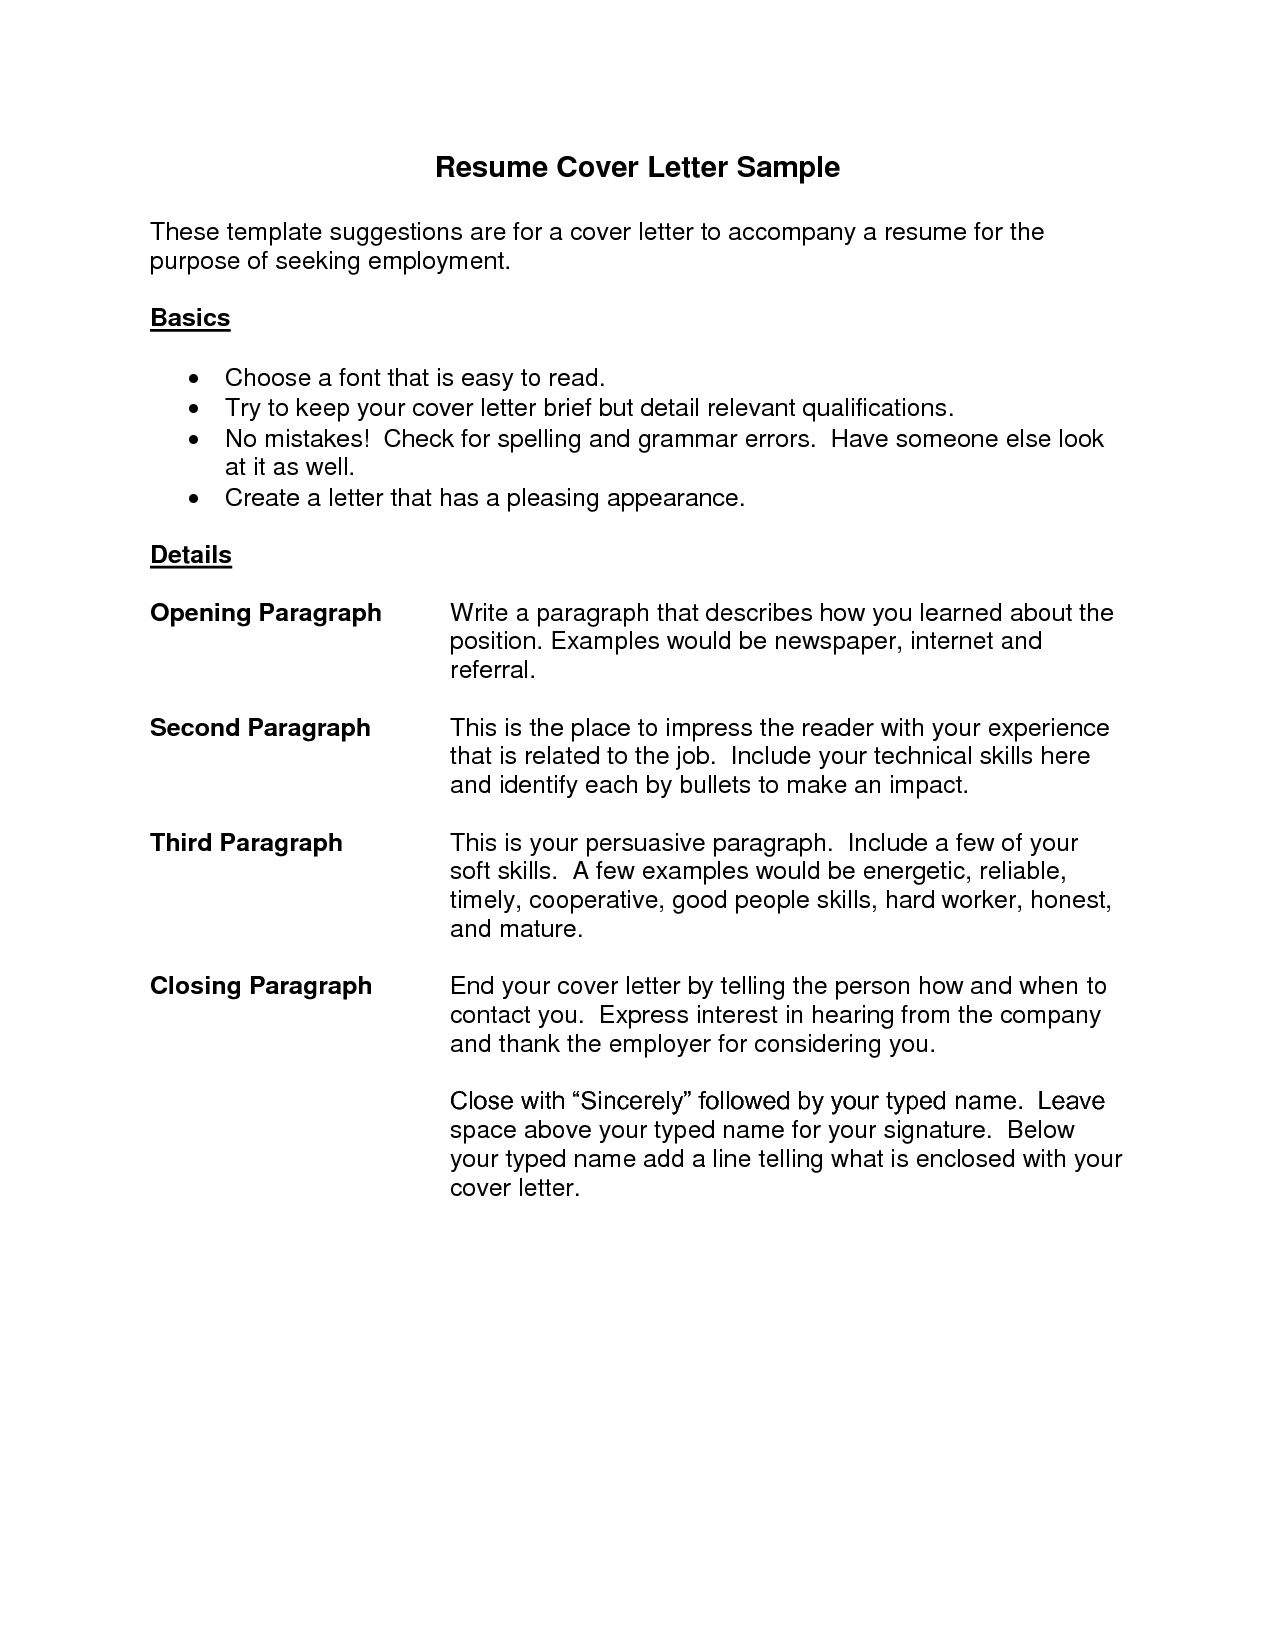 resume Cover Letter Resume Examples cover letter resume best templatesimple application sample